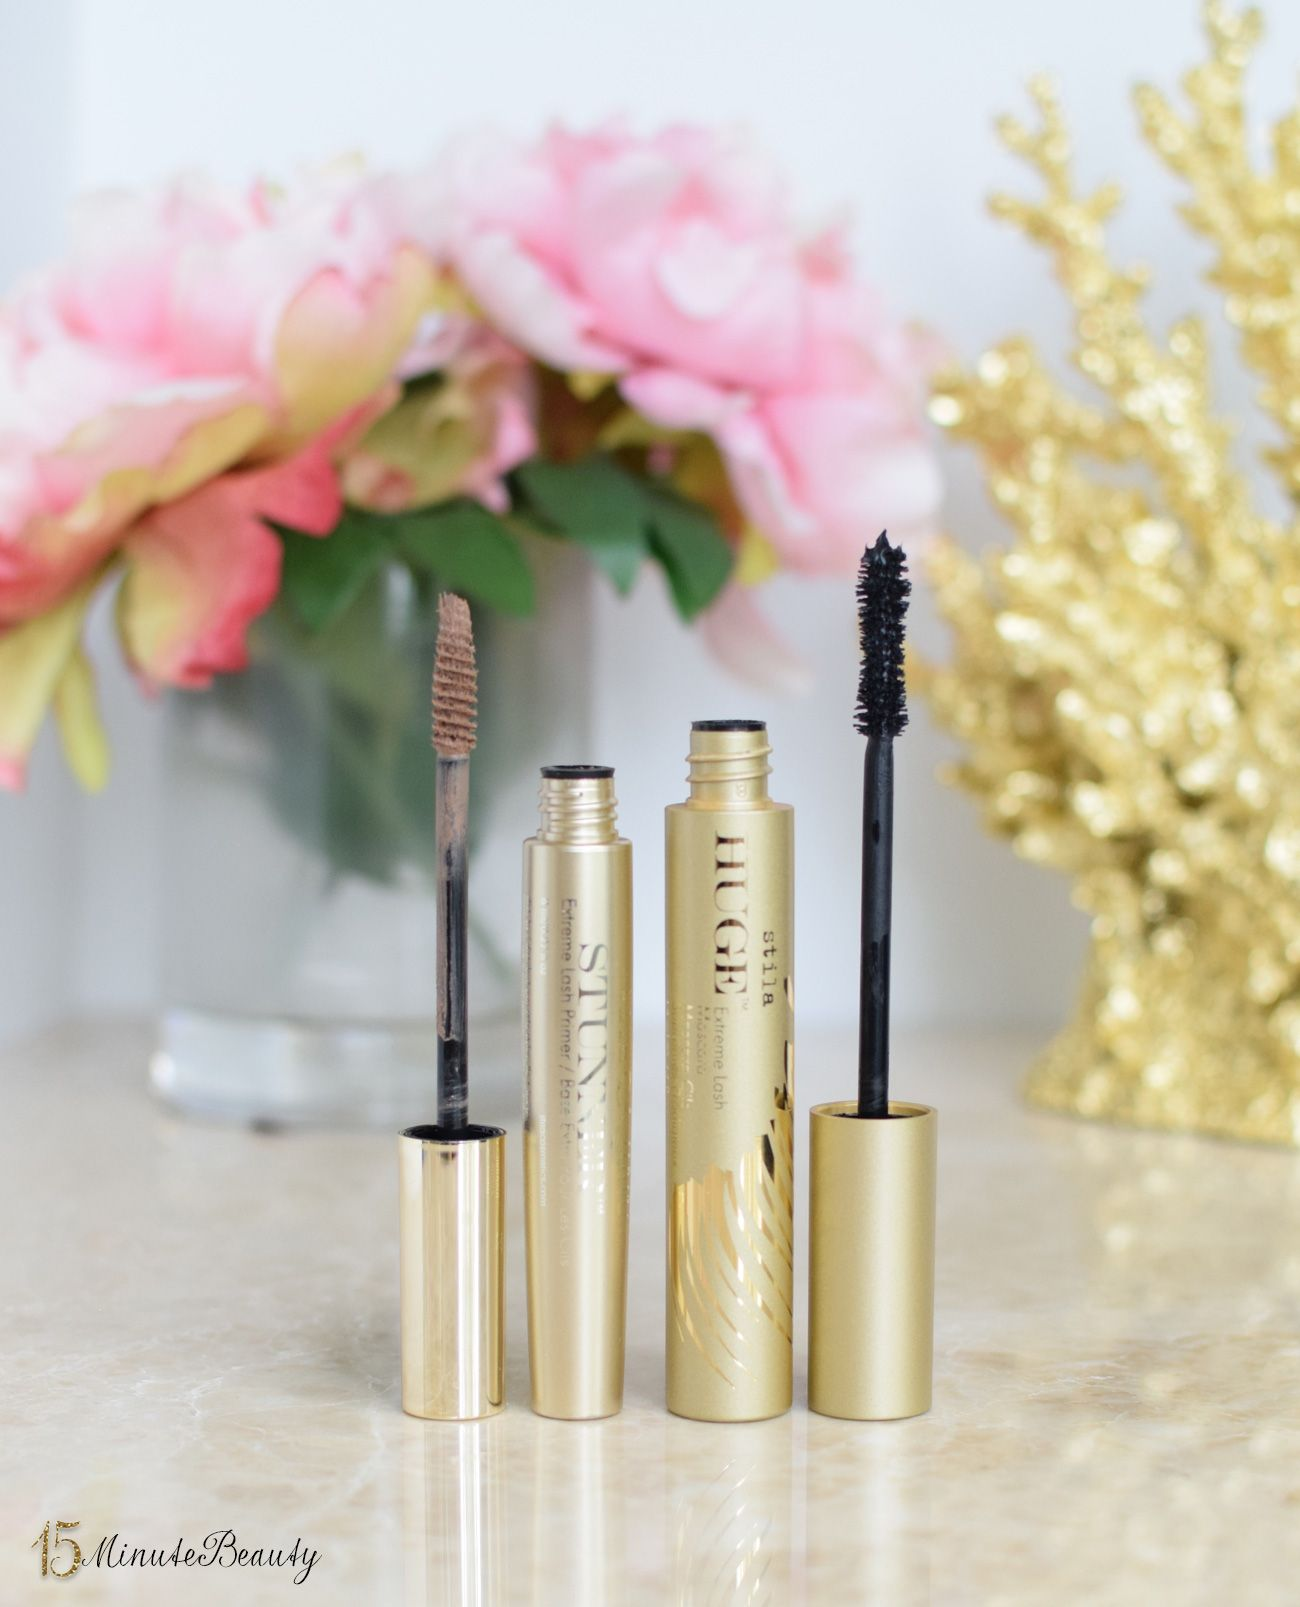 Tarte stunner vs tarte stunner dupe comparison - New Adventures In Lashes Stila Huge Extreme Lash Mascara And Lash Stunner Extreme Lash Primer